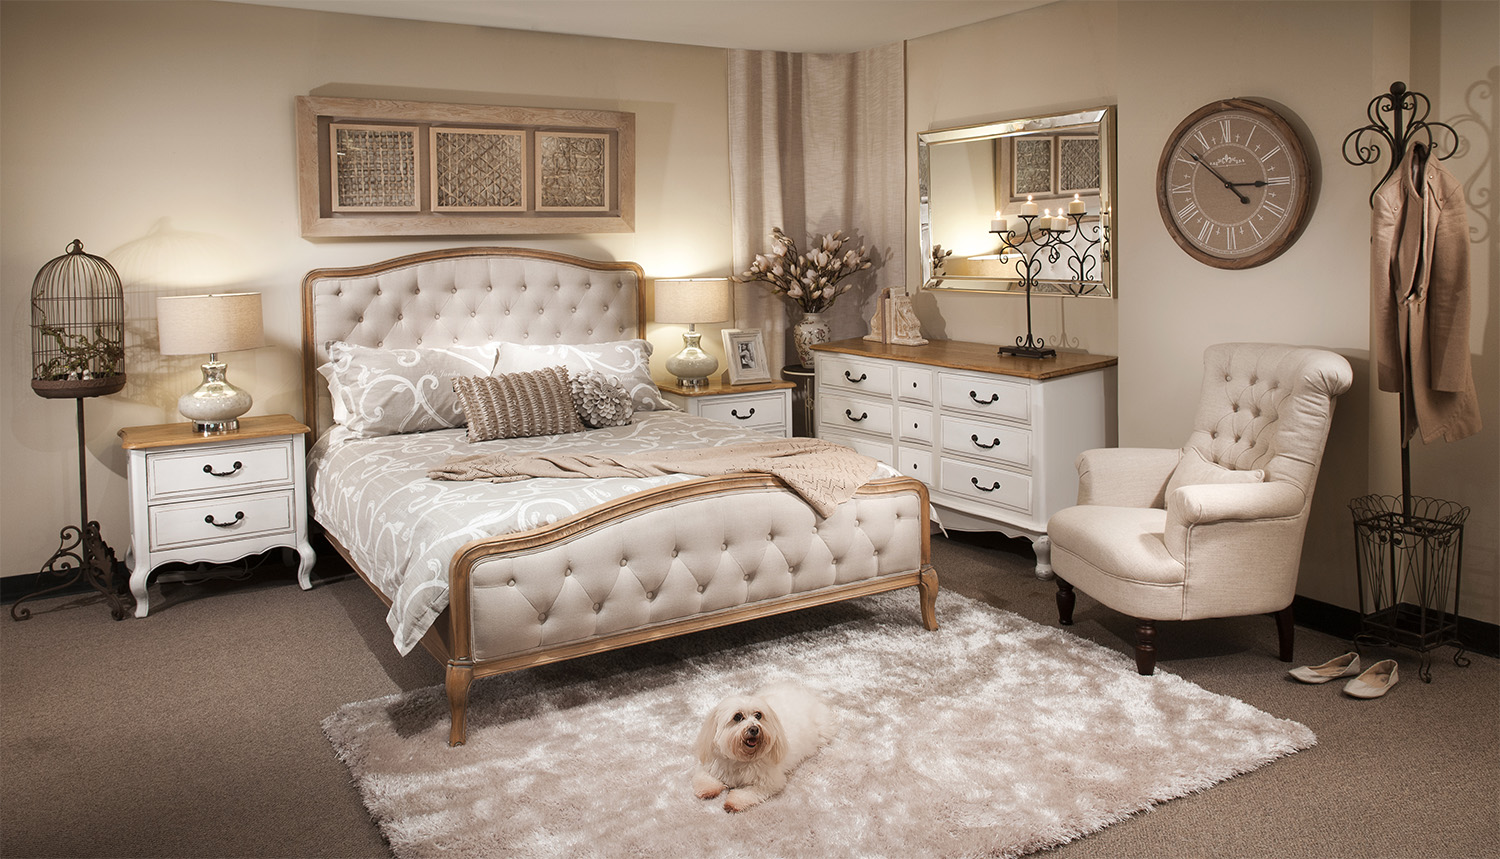 audrey bedroom suite RXOEYBK